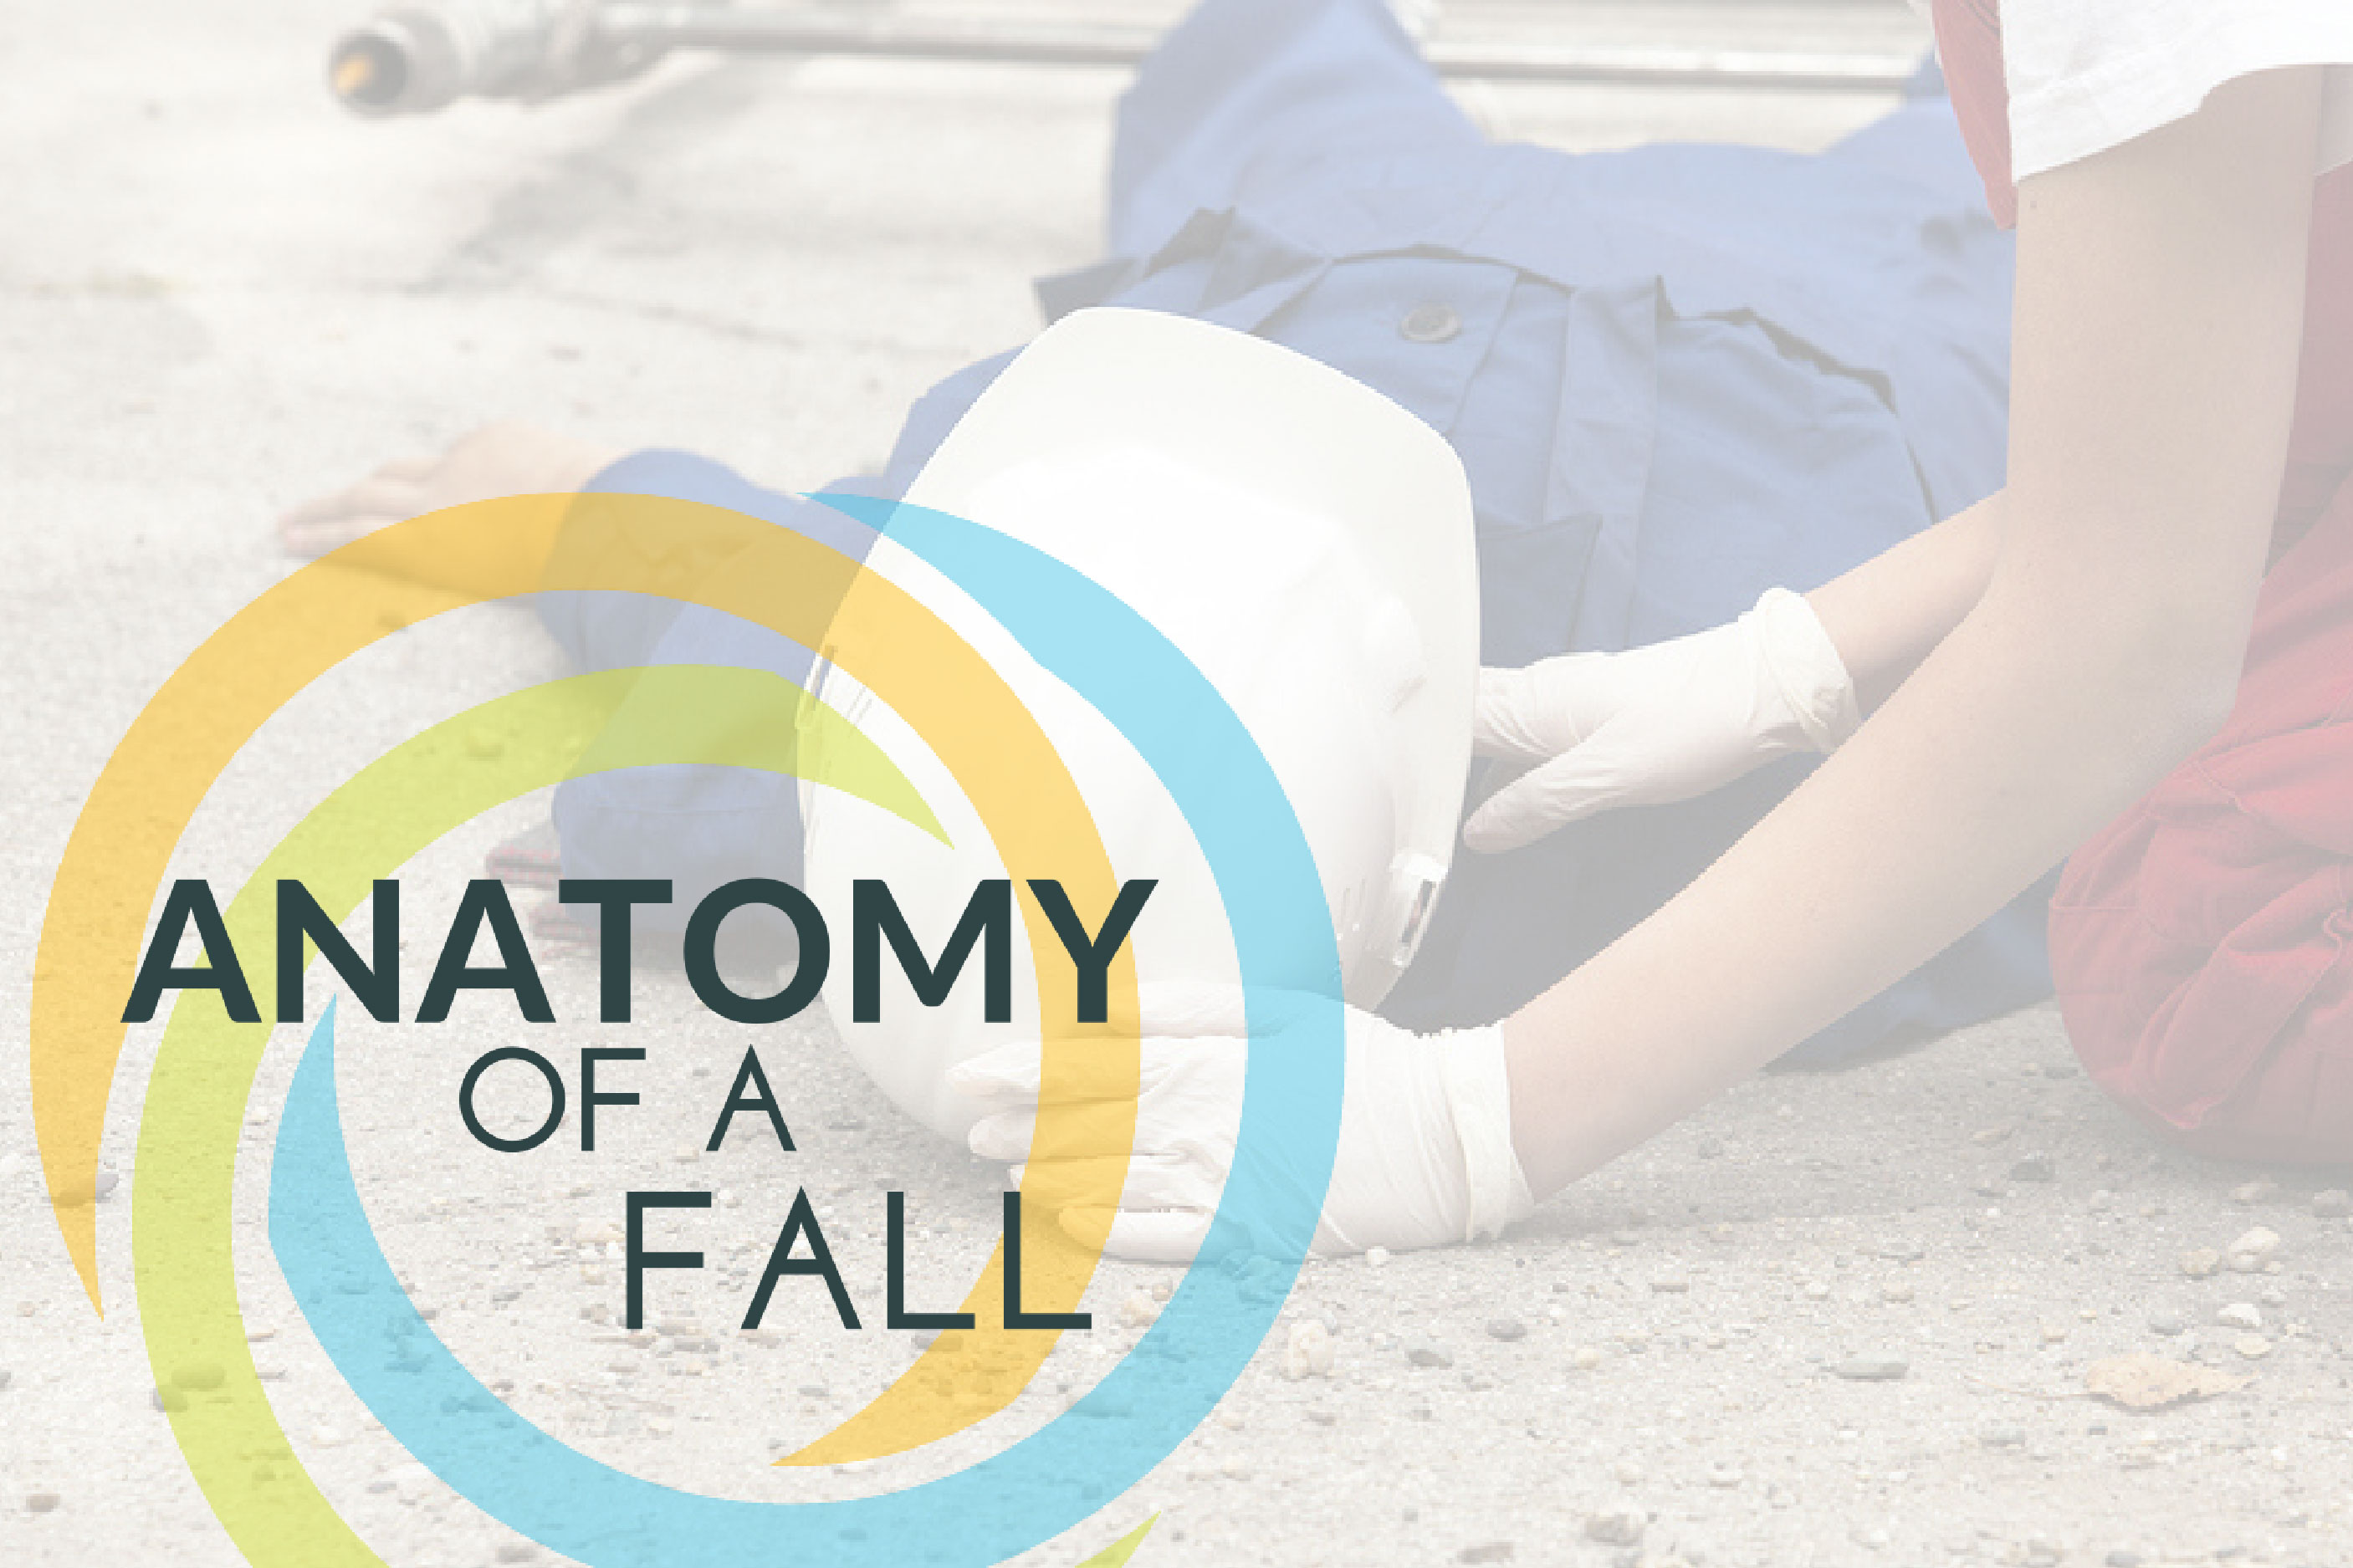 Anatomy Of a Fall